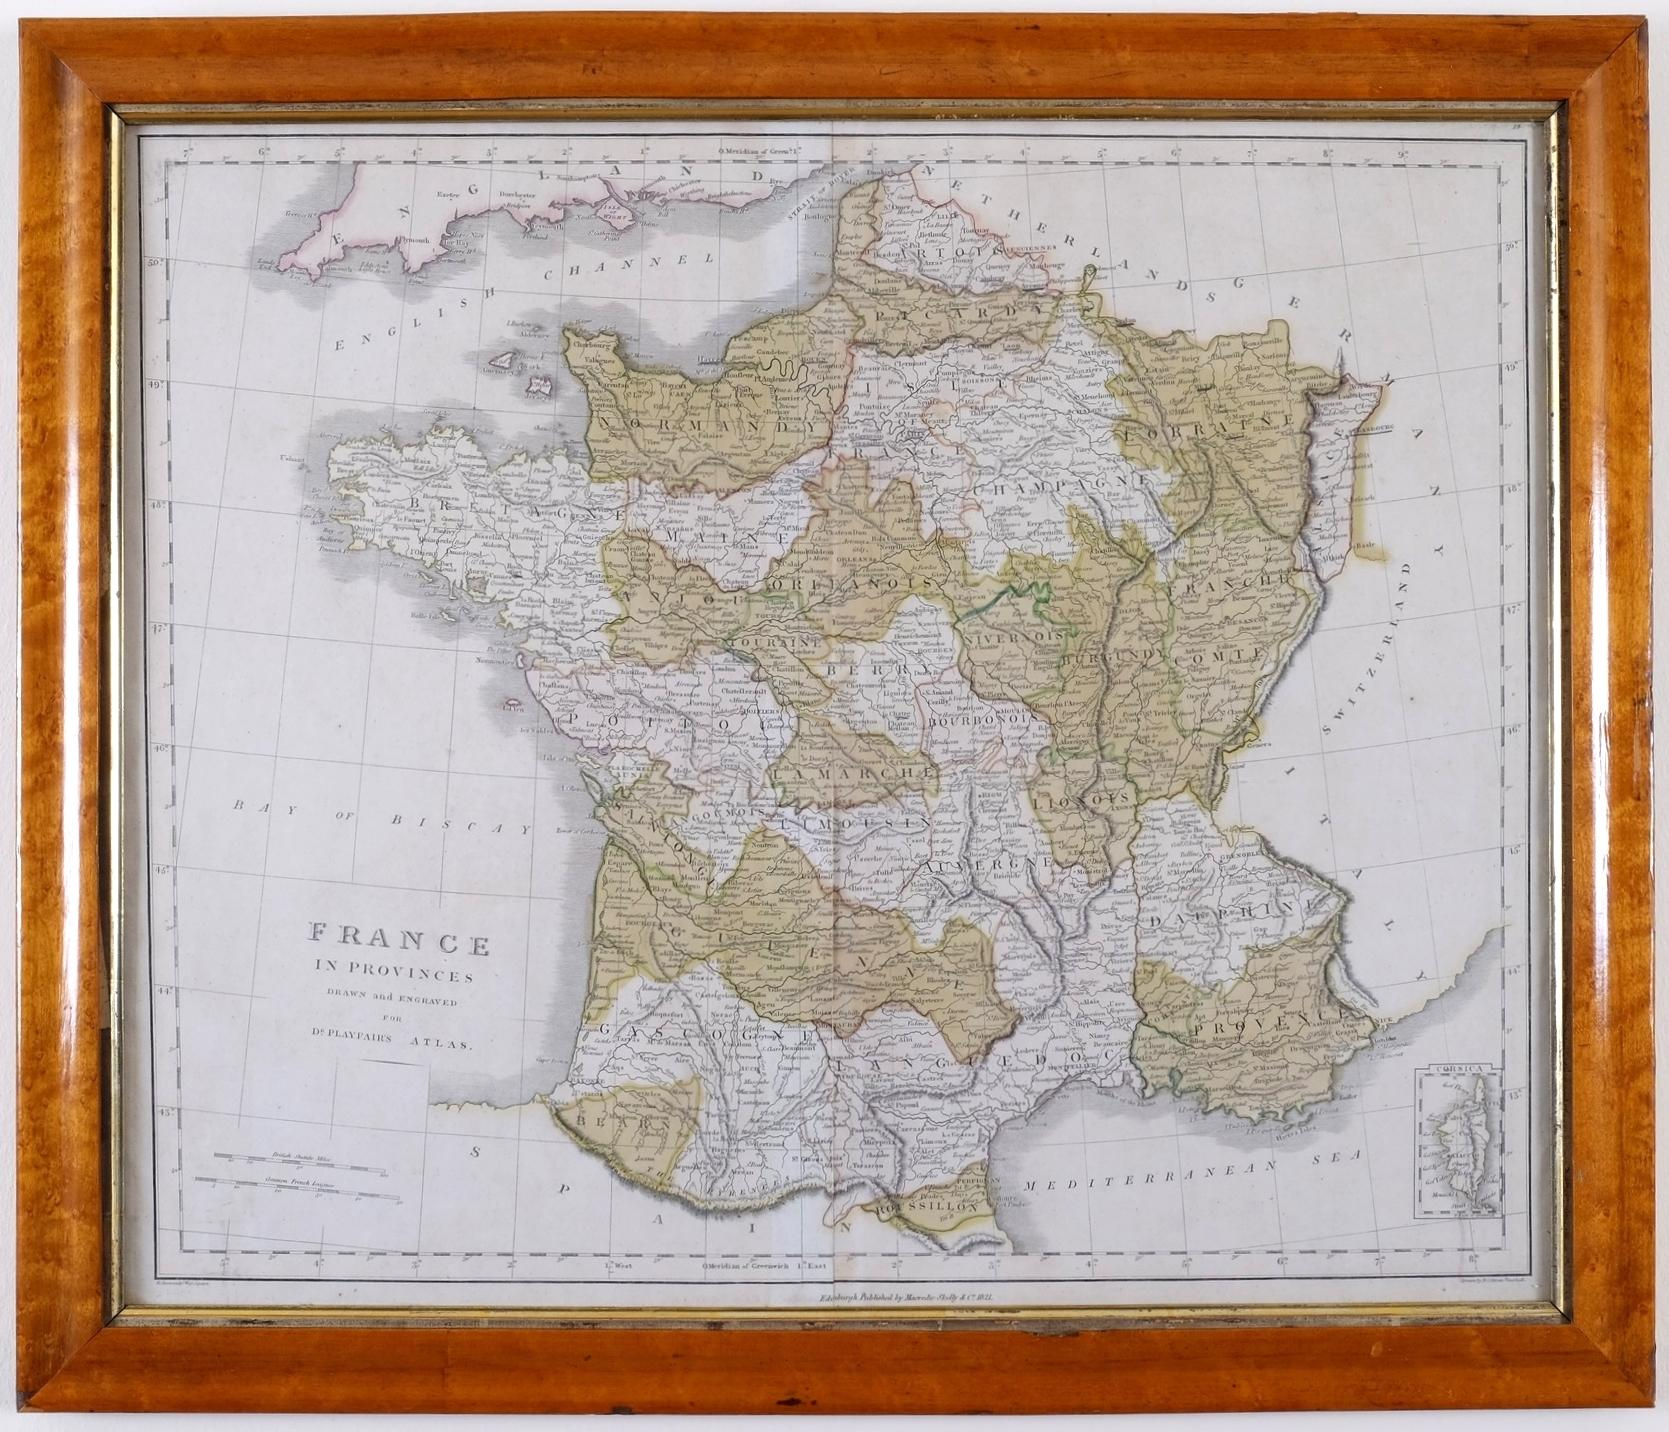 A Beautiful Antique Map of France